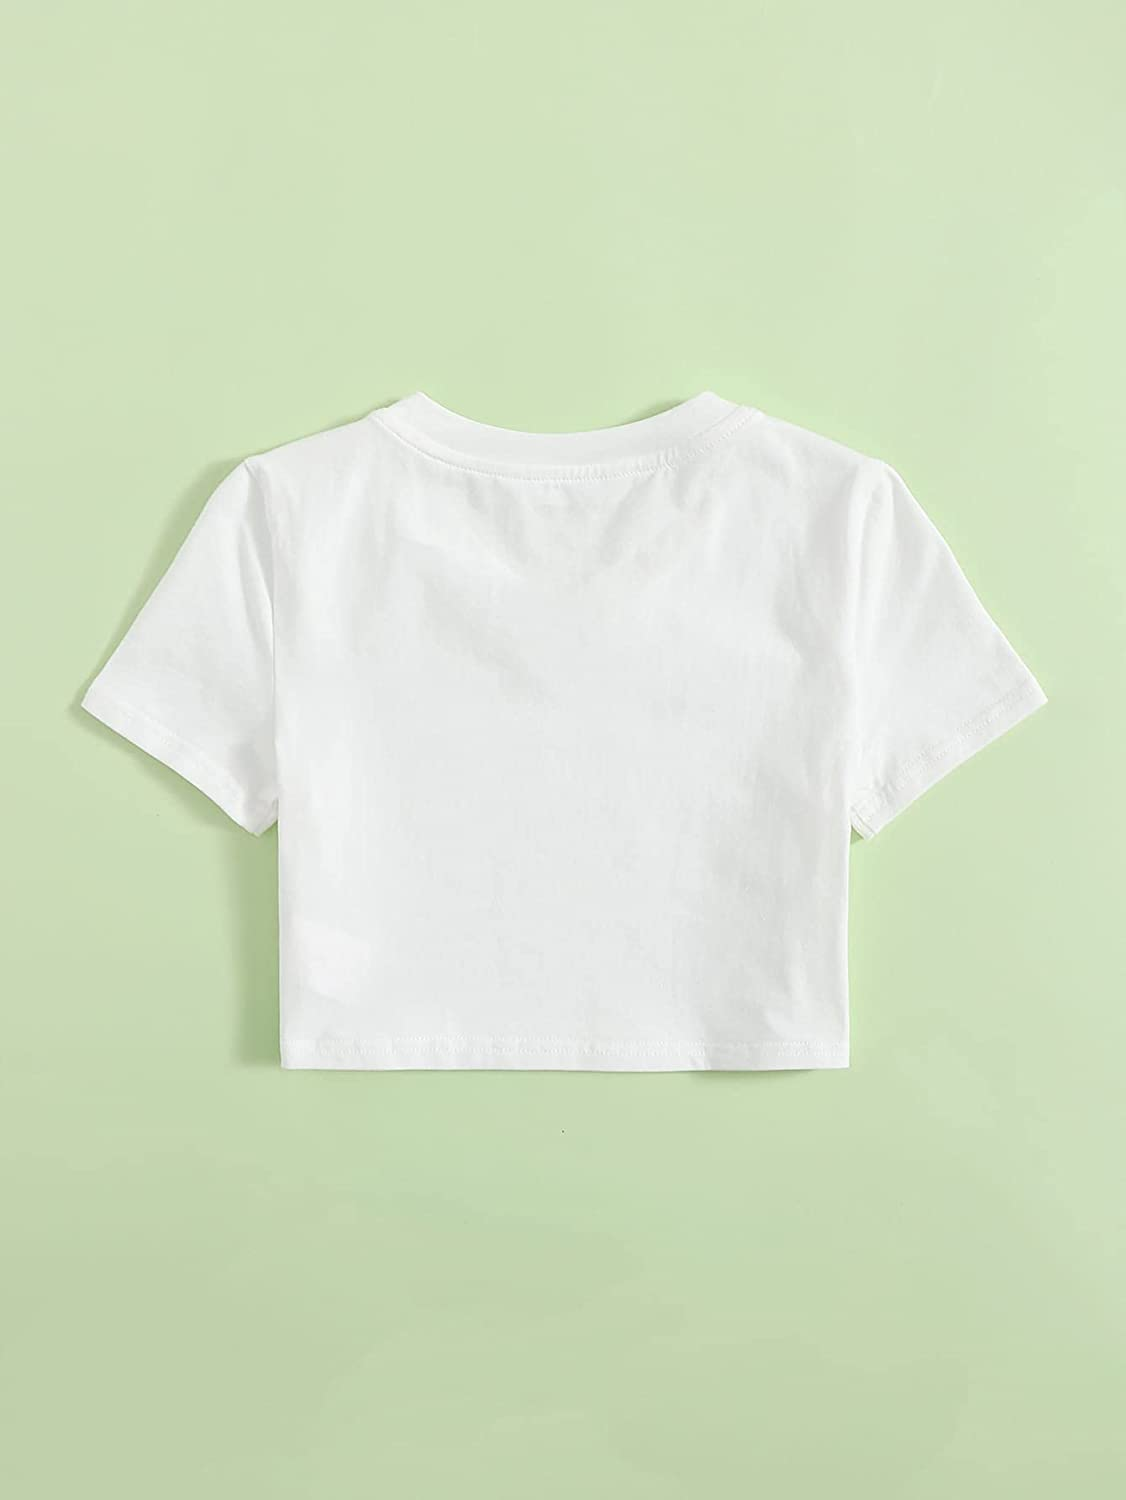 Floerns Girls Casual V Neck Short Sleeve Solid Crop Tops Tee Shirts